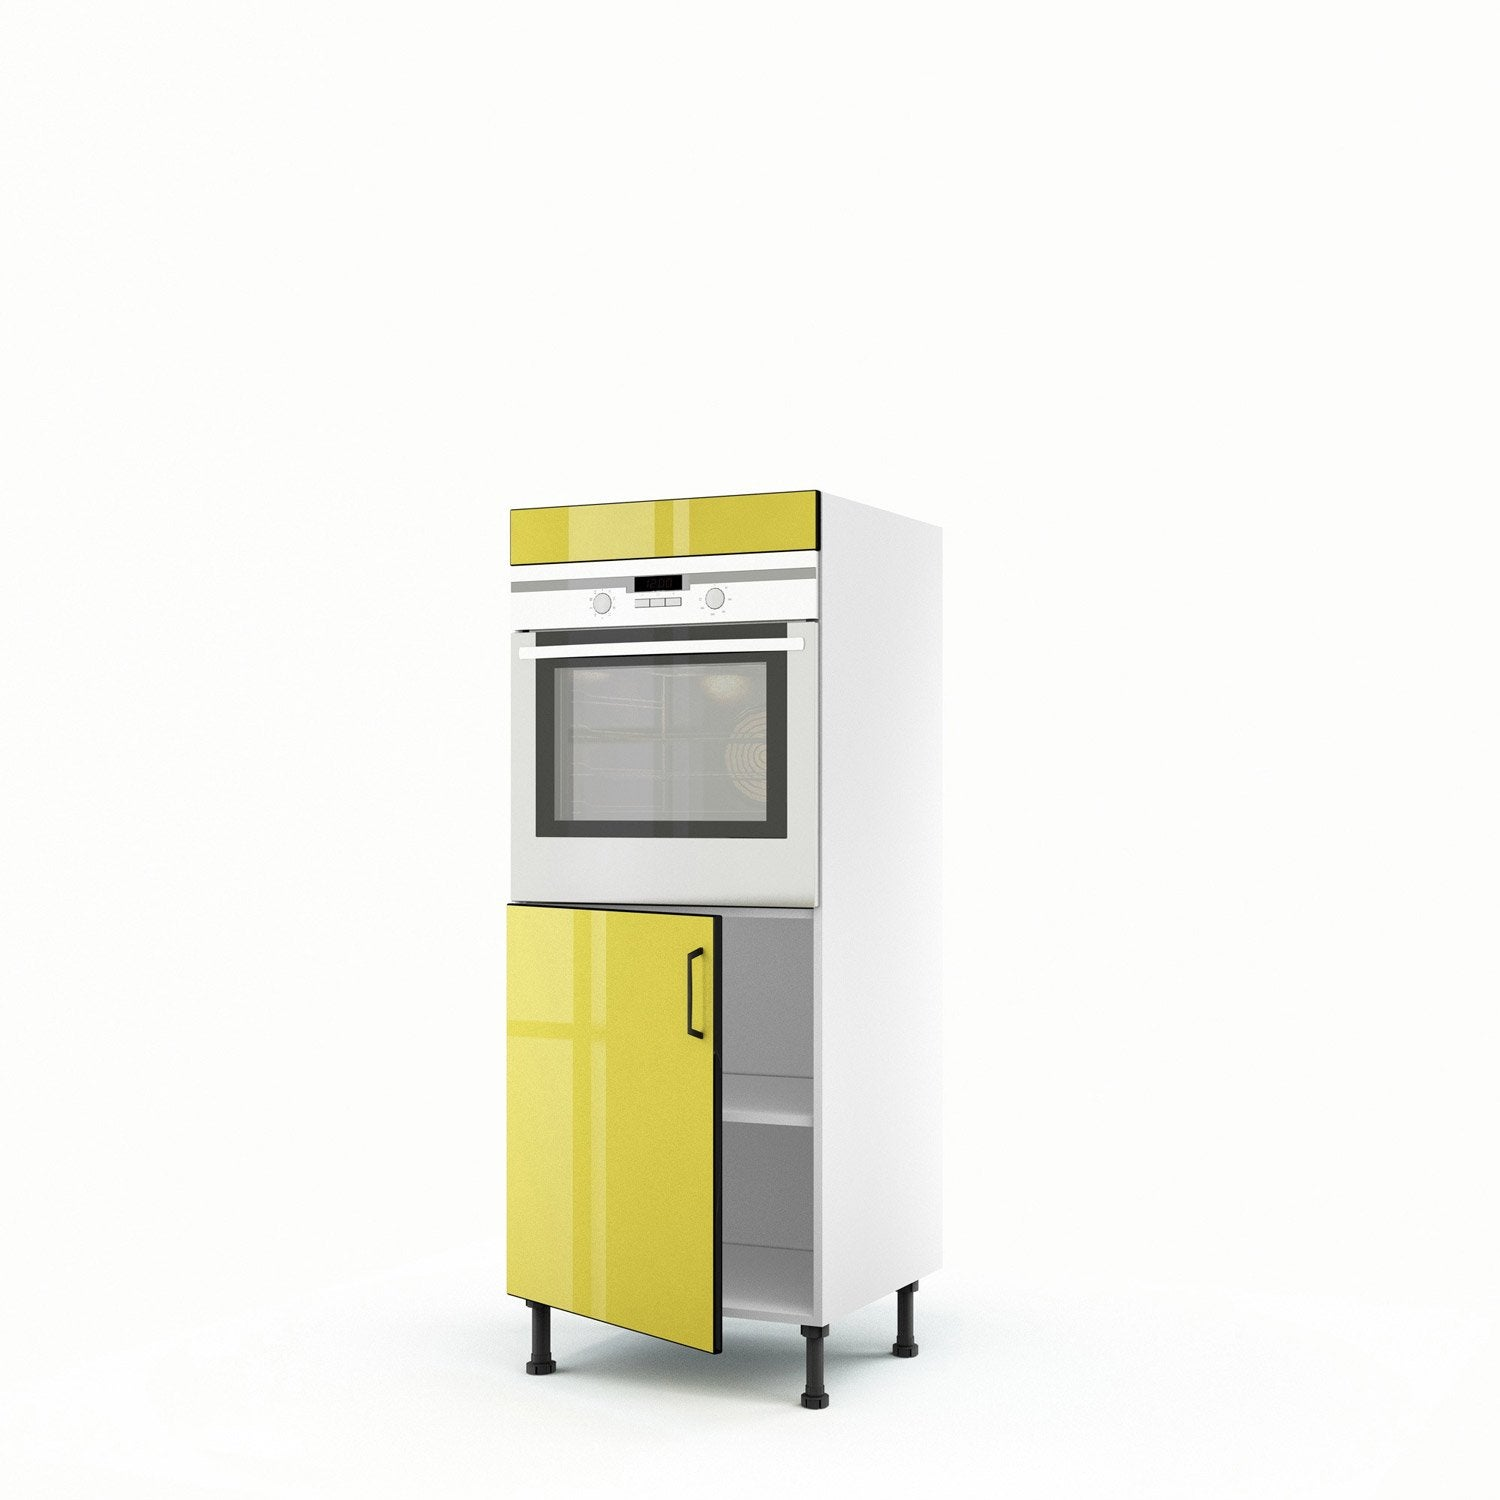 meuble de cuisine demi colonne jaune four 1 porte pop x x cm leroy merlin. Black Bedroom Furniture Sets. Home Design Ideas